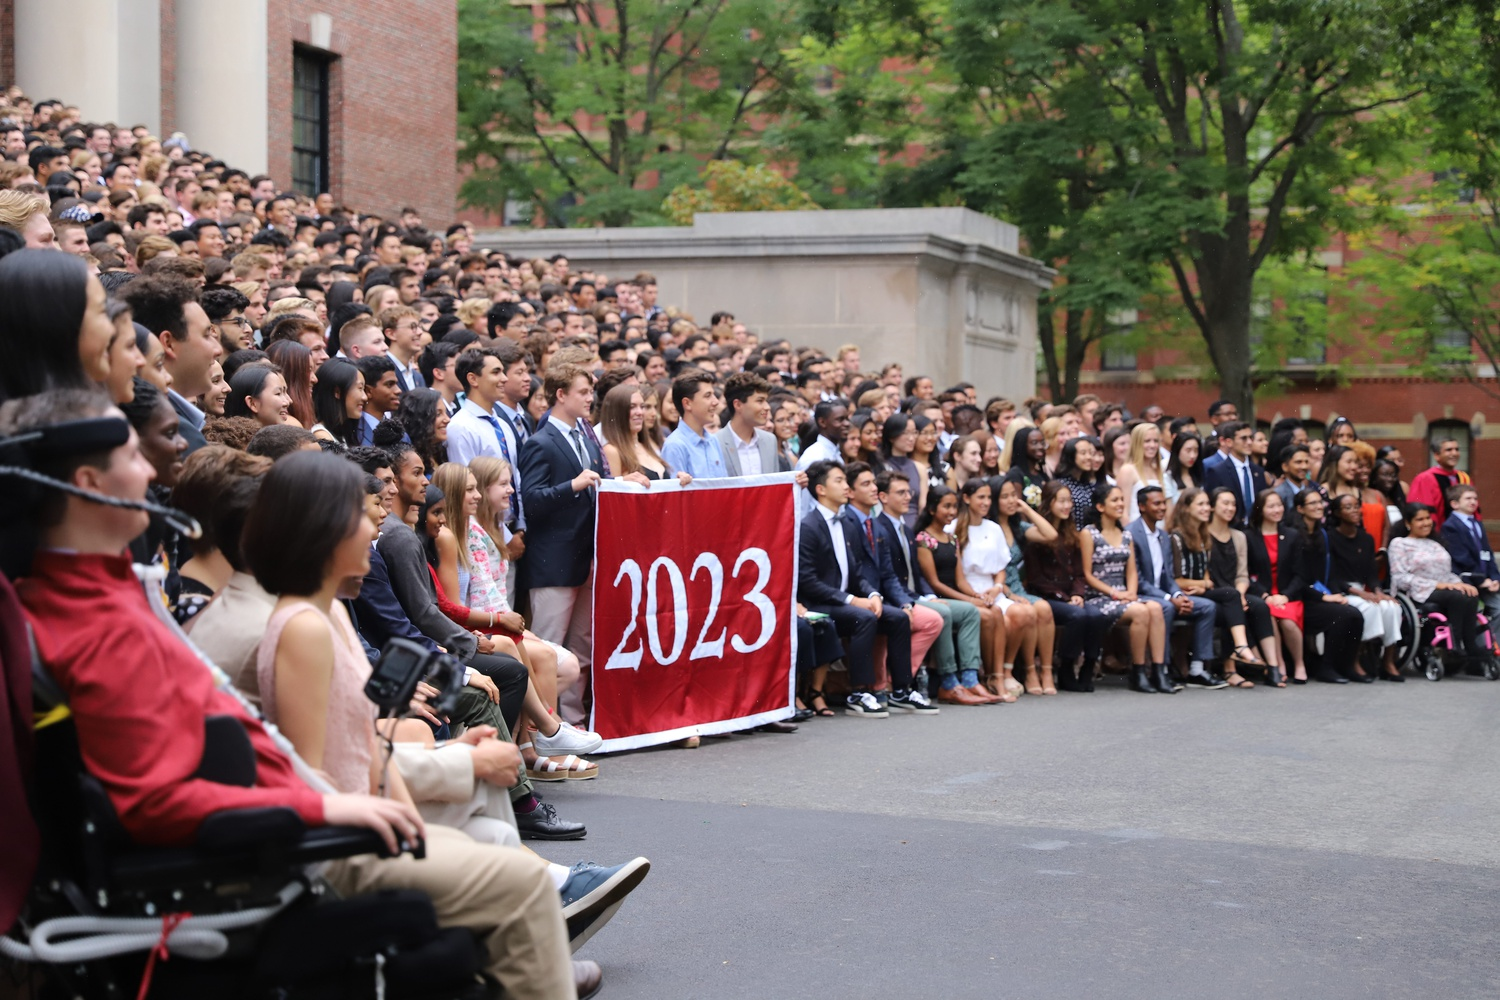 Despite the rain, the Class of 2023 gathered to take a class photo, an annual tradition for the first-year class after attending convocation.